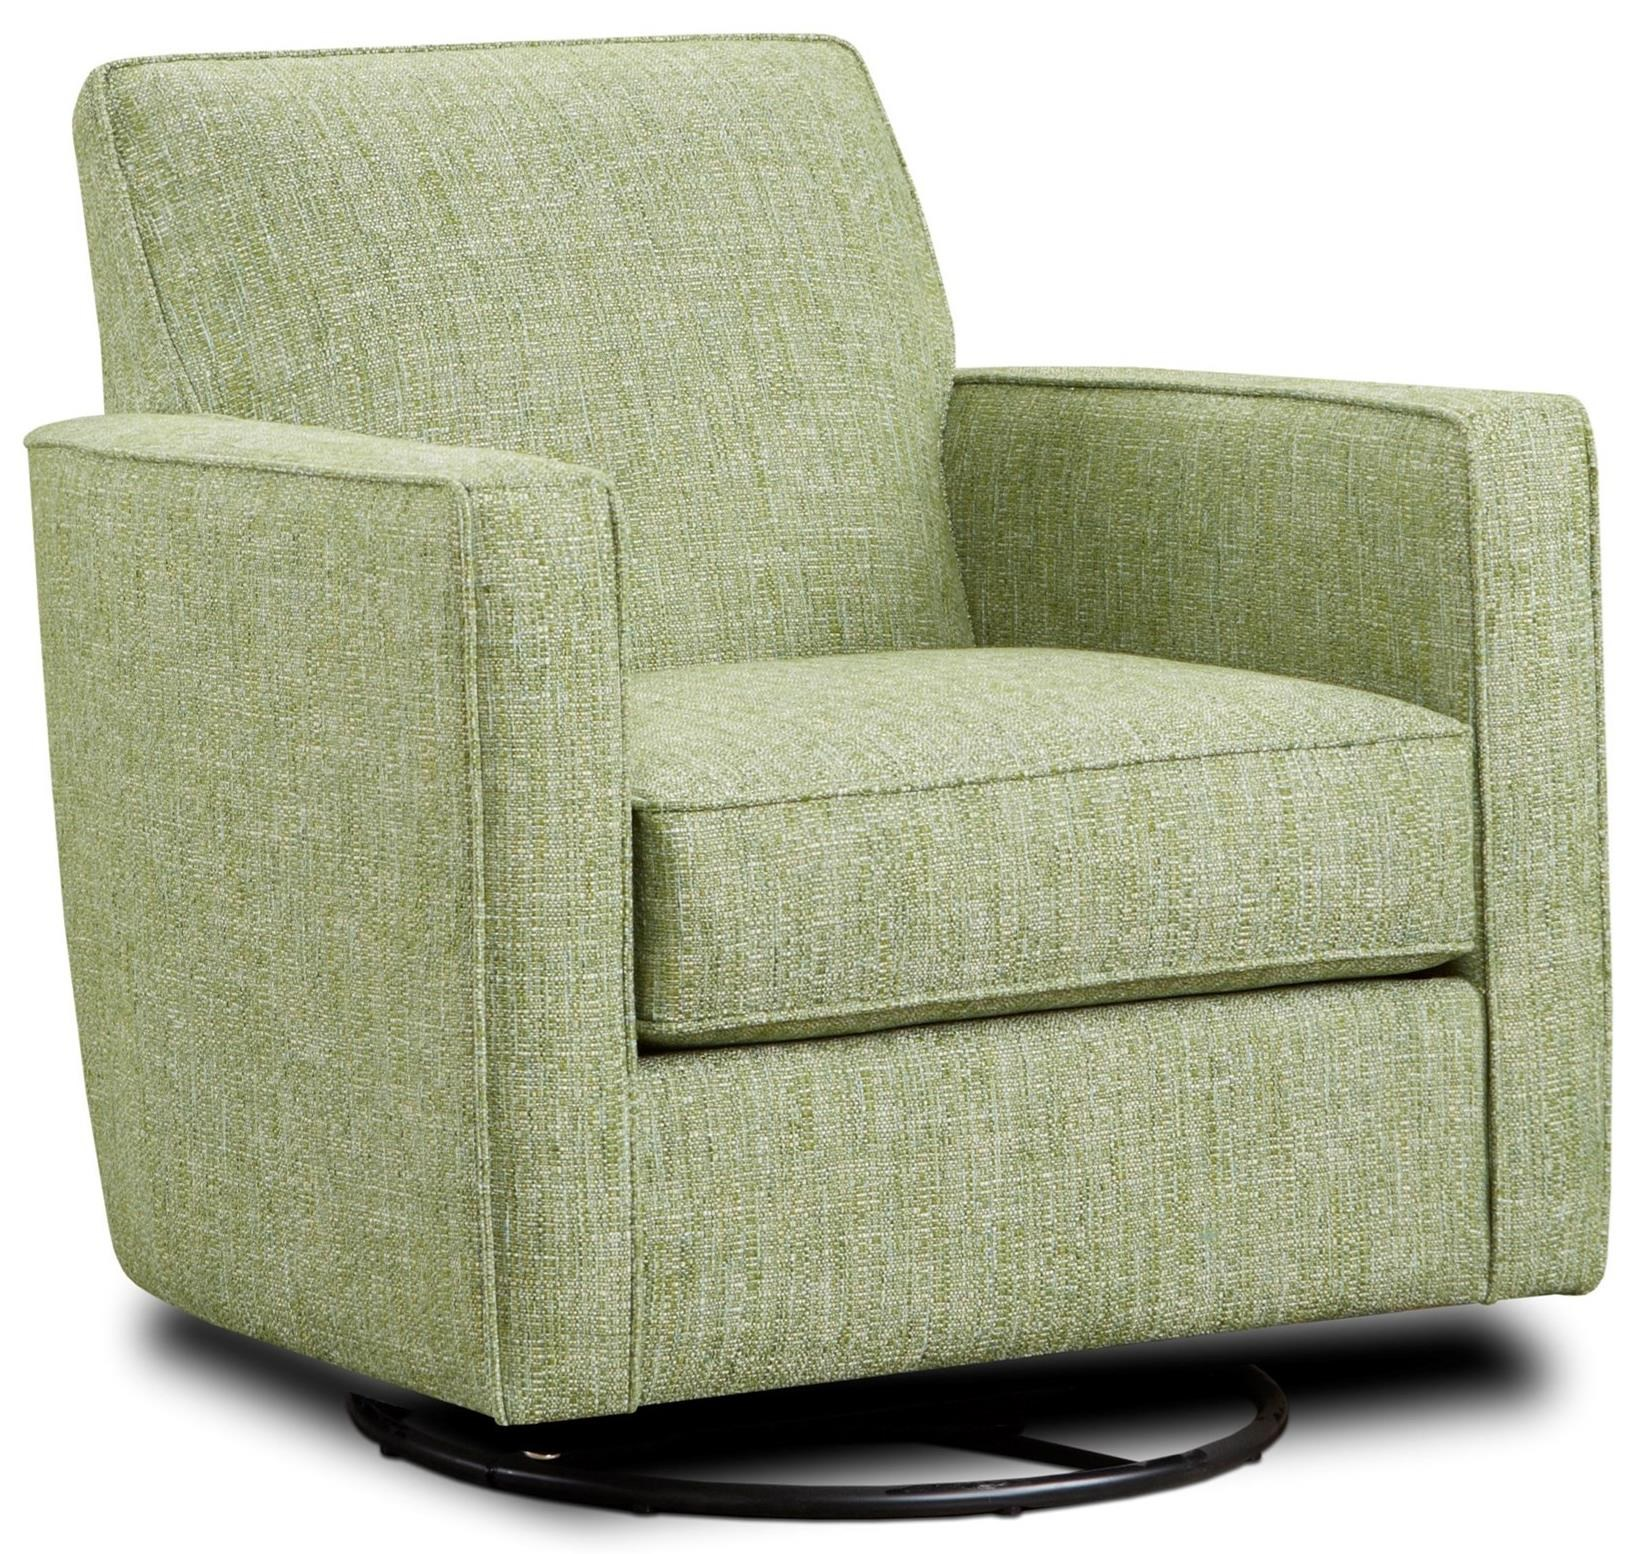 402-G Swivel Glider by Fusion Furniture at Wilson's Furniture